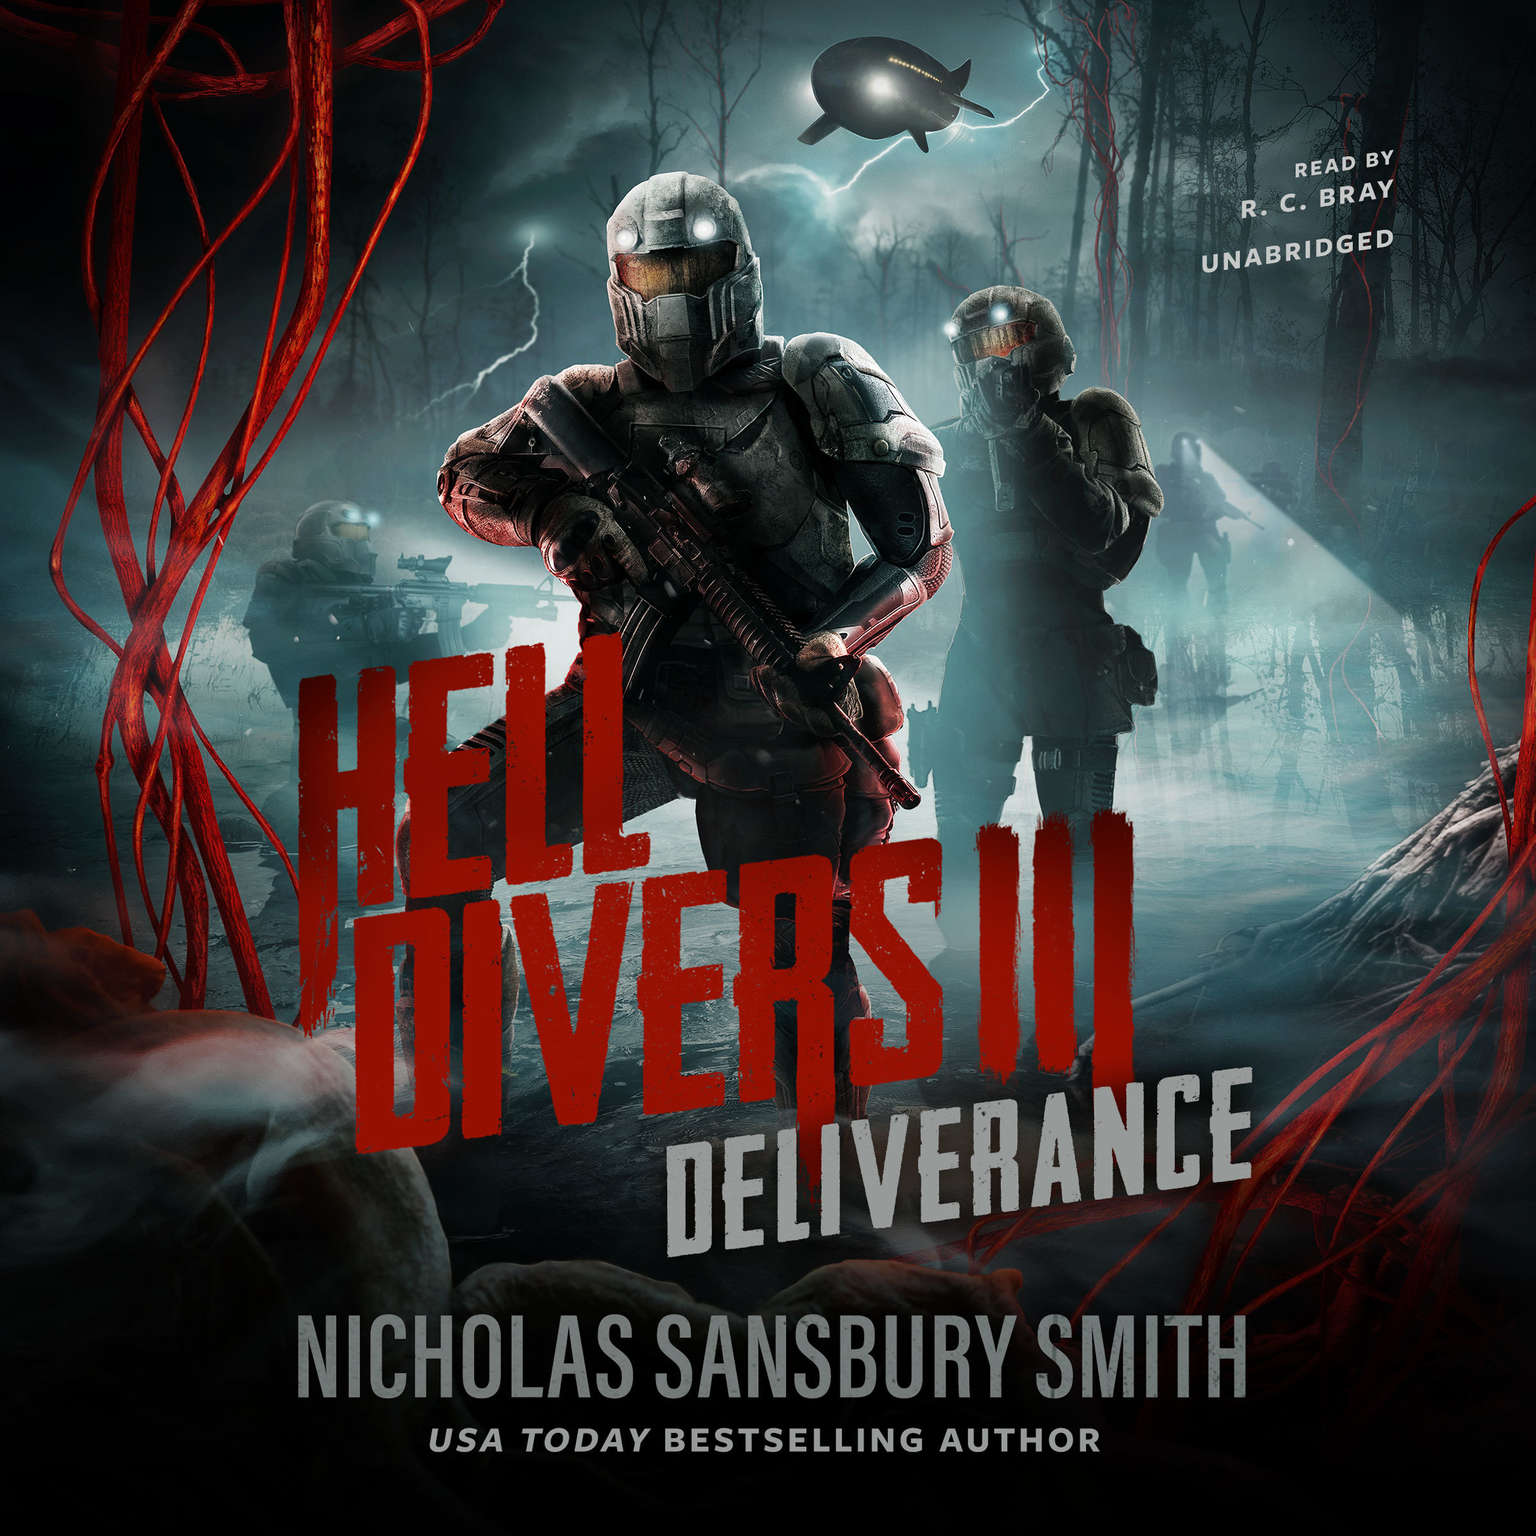 Hell Divers III: Deliverance Audiobook, by Nicholas Sansbury Smith